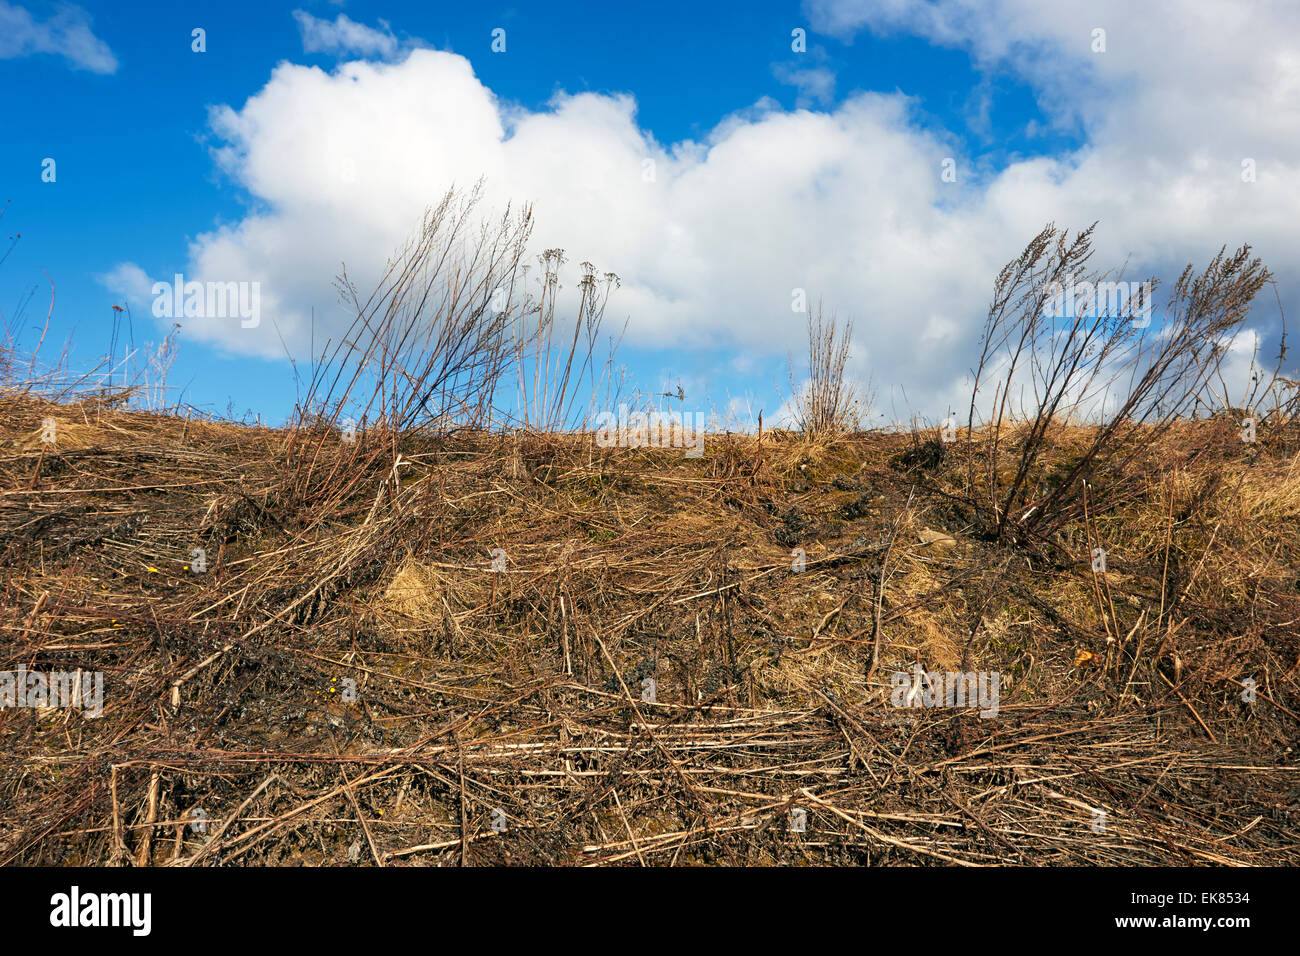 dead plants at spring, Finland - Stock Image